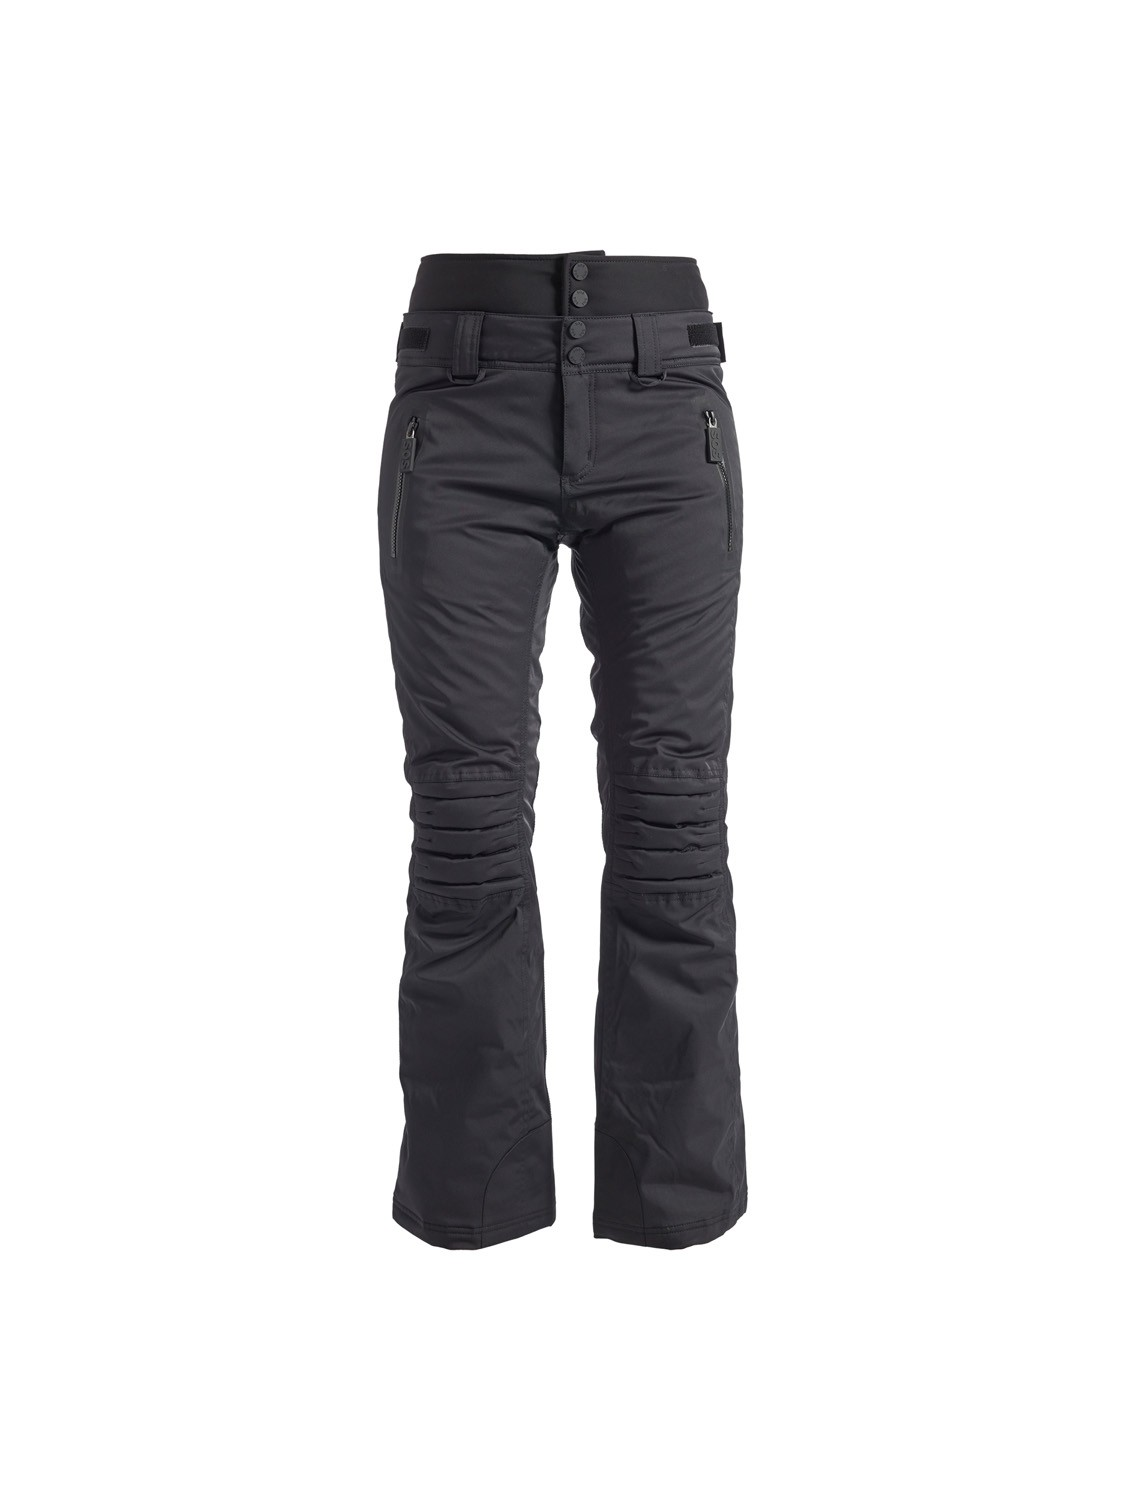 SOS Sportswear of Sweden Skihose Driss Pant Black